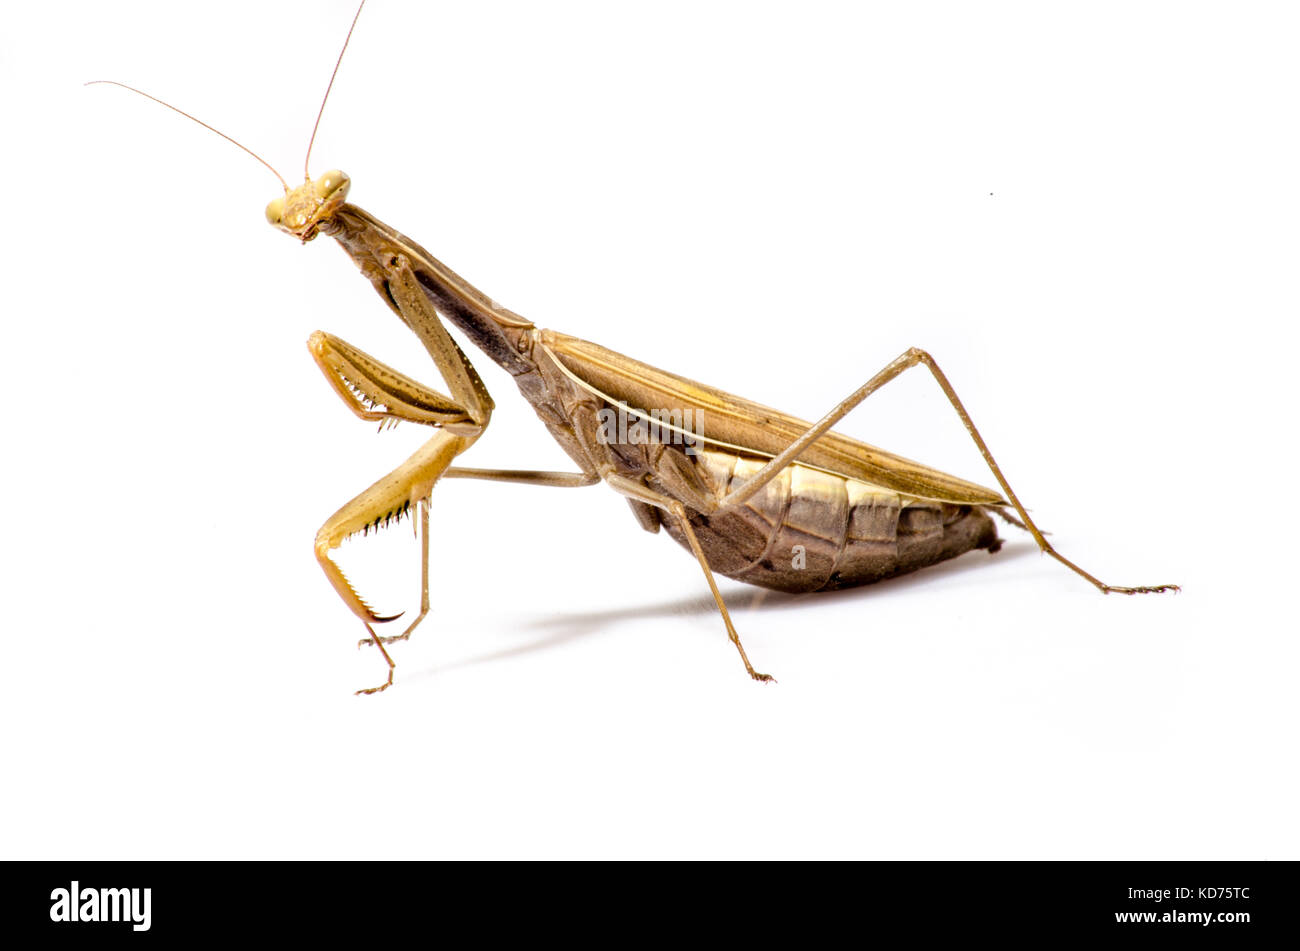 Wandering Violin Mantis, Gongylus gongylodes, in front of white background. - Stock Image